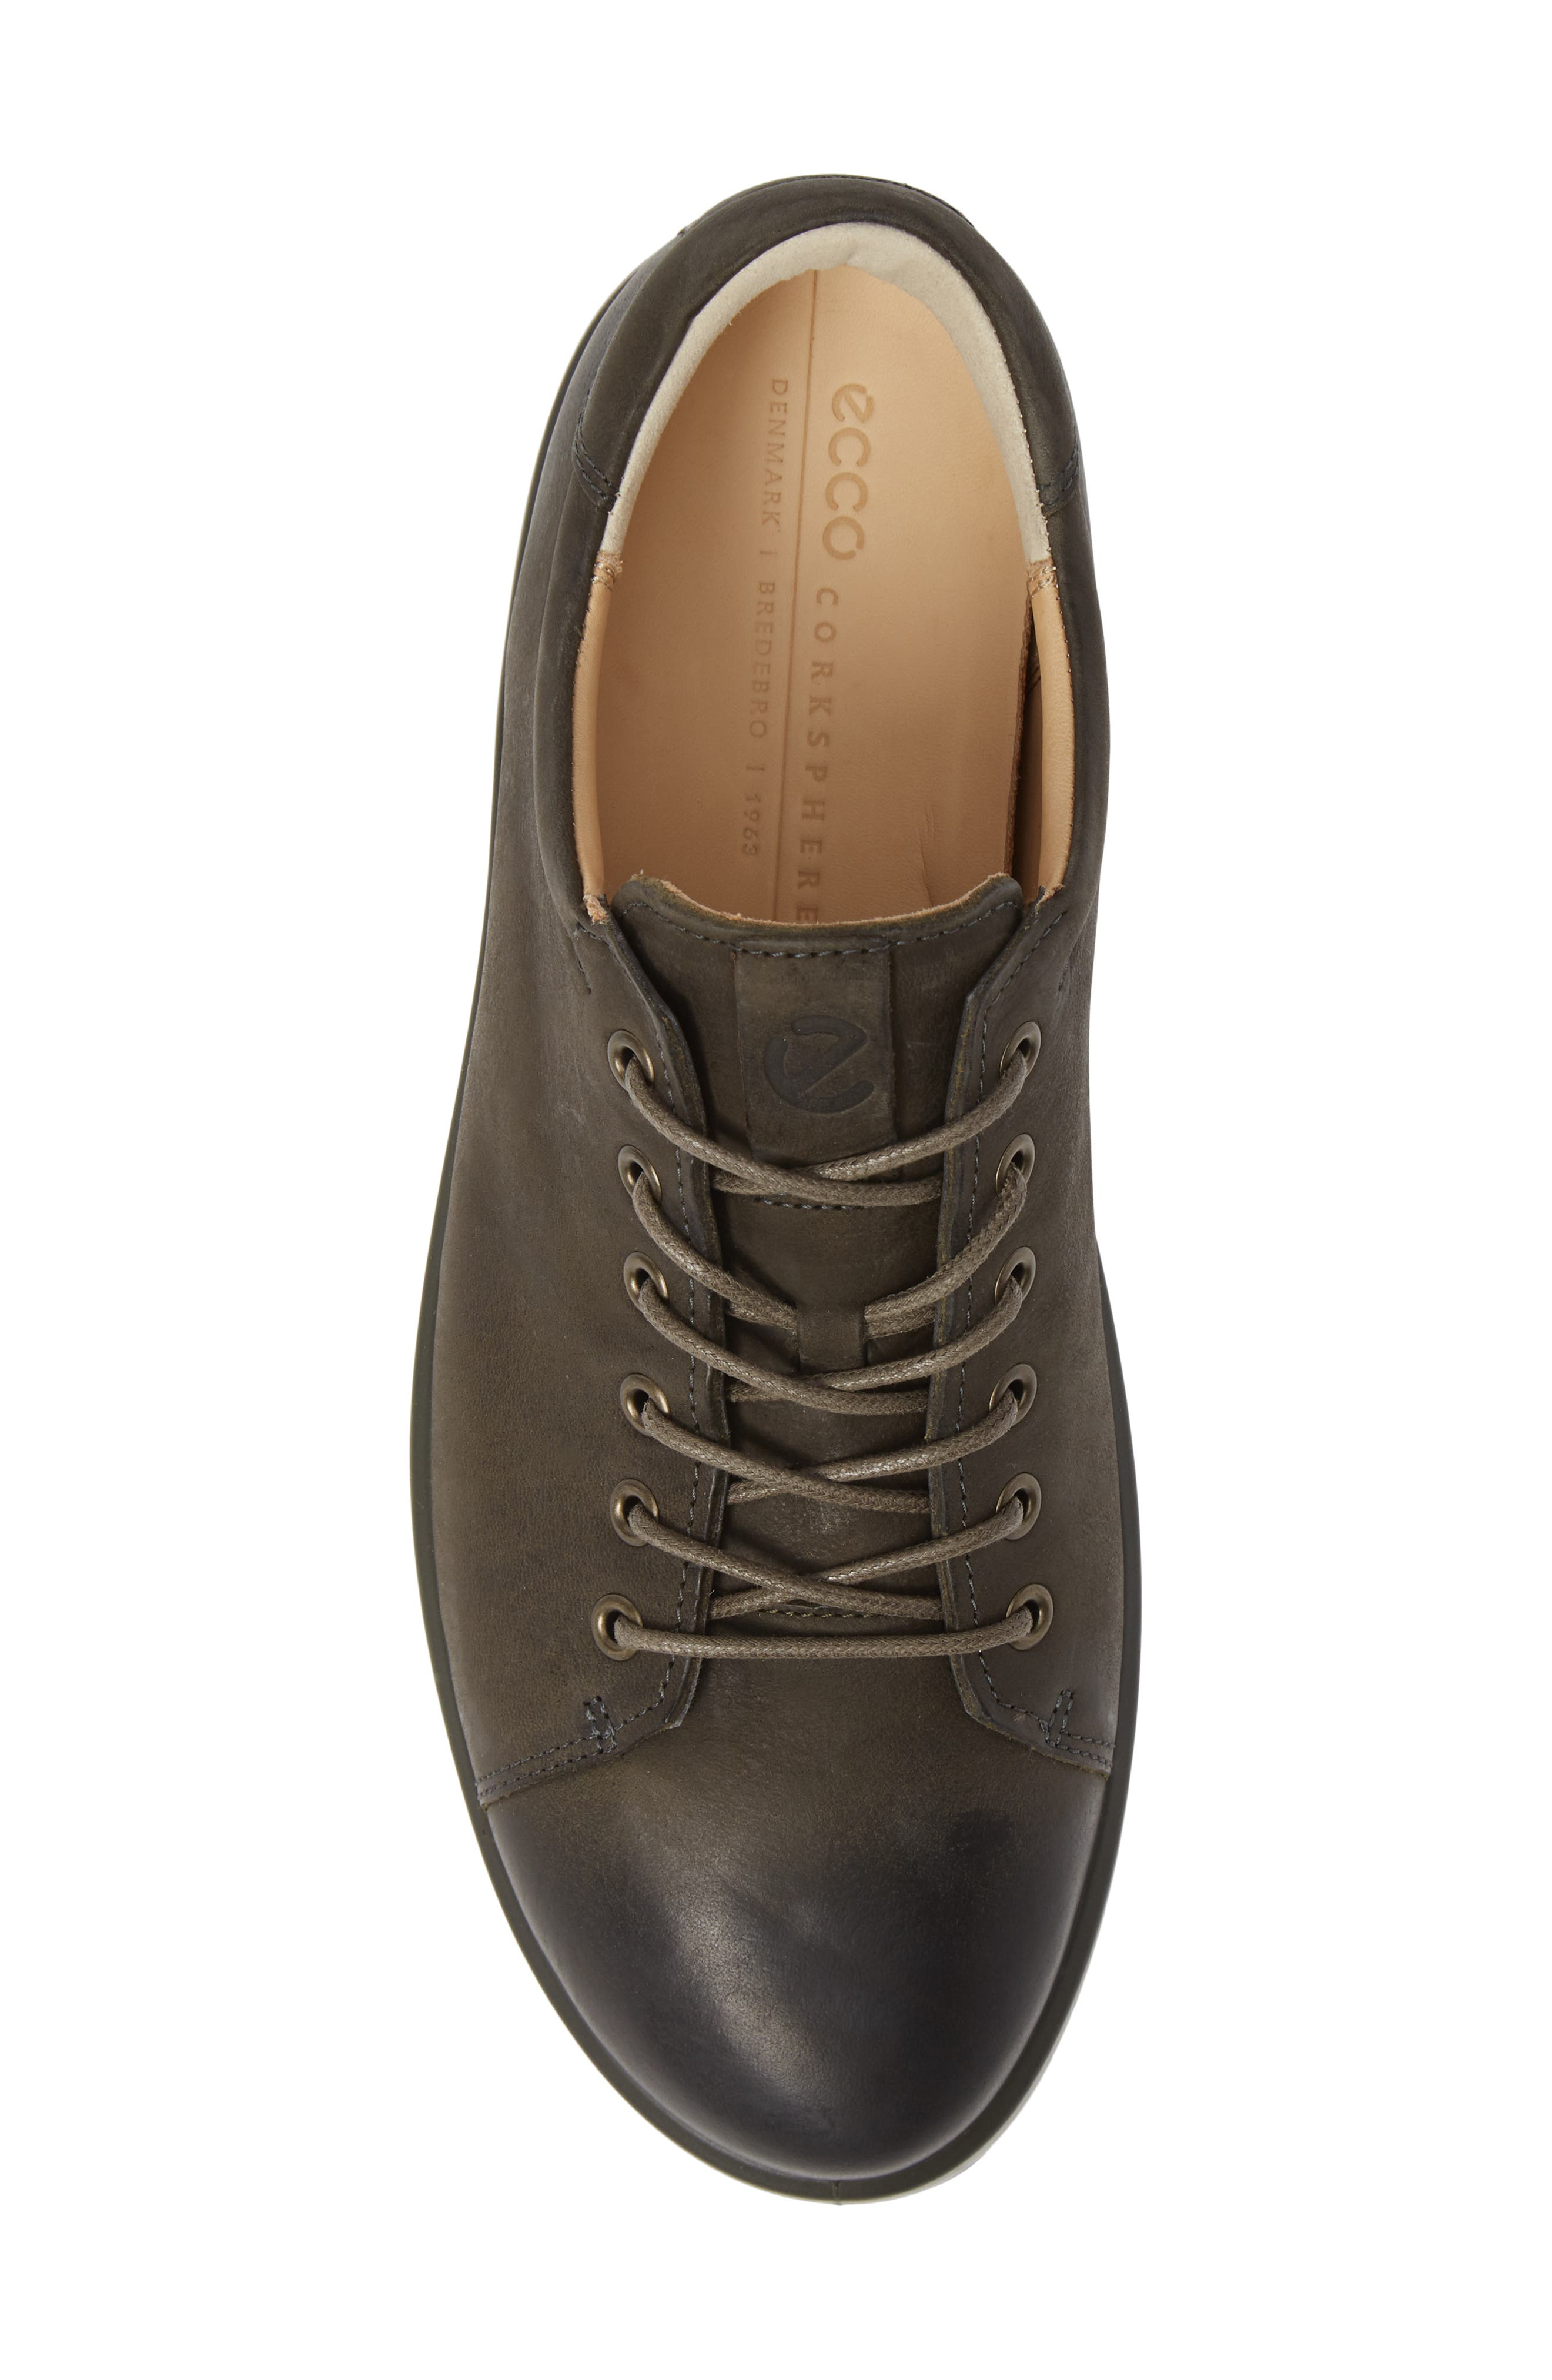 Corksphere 1 Sneaker,                             Alternate thumbnail 5, color,                             TARMAC LEATHER